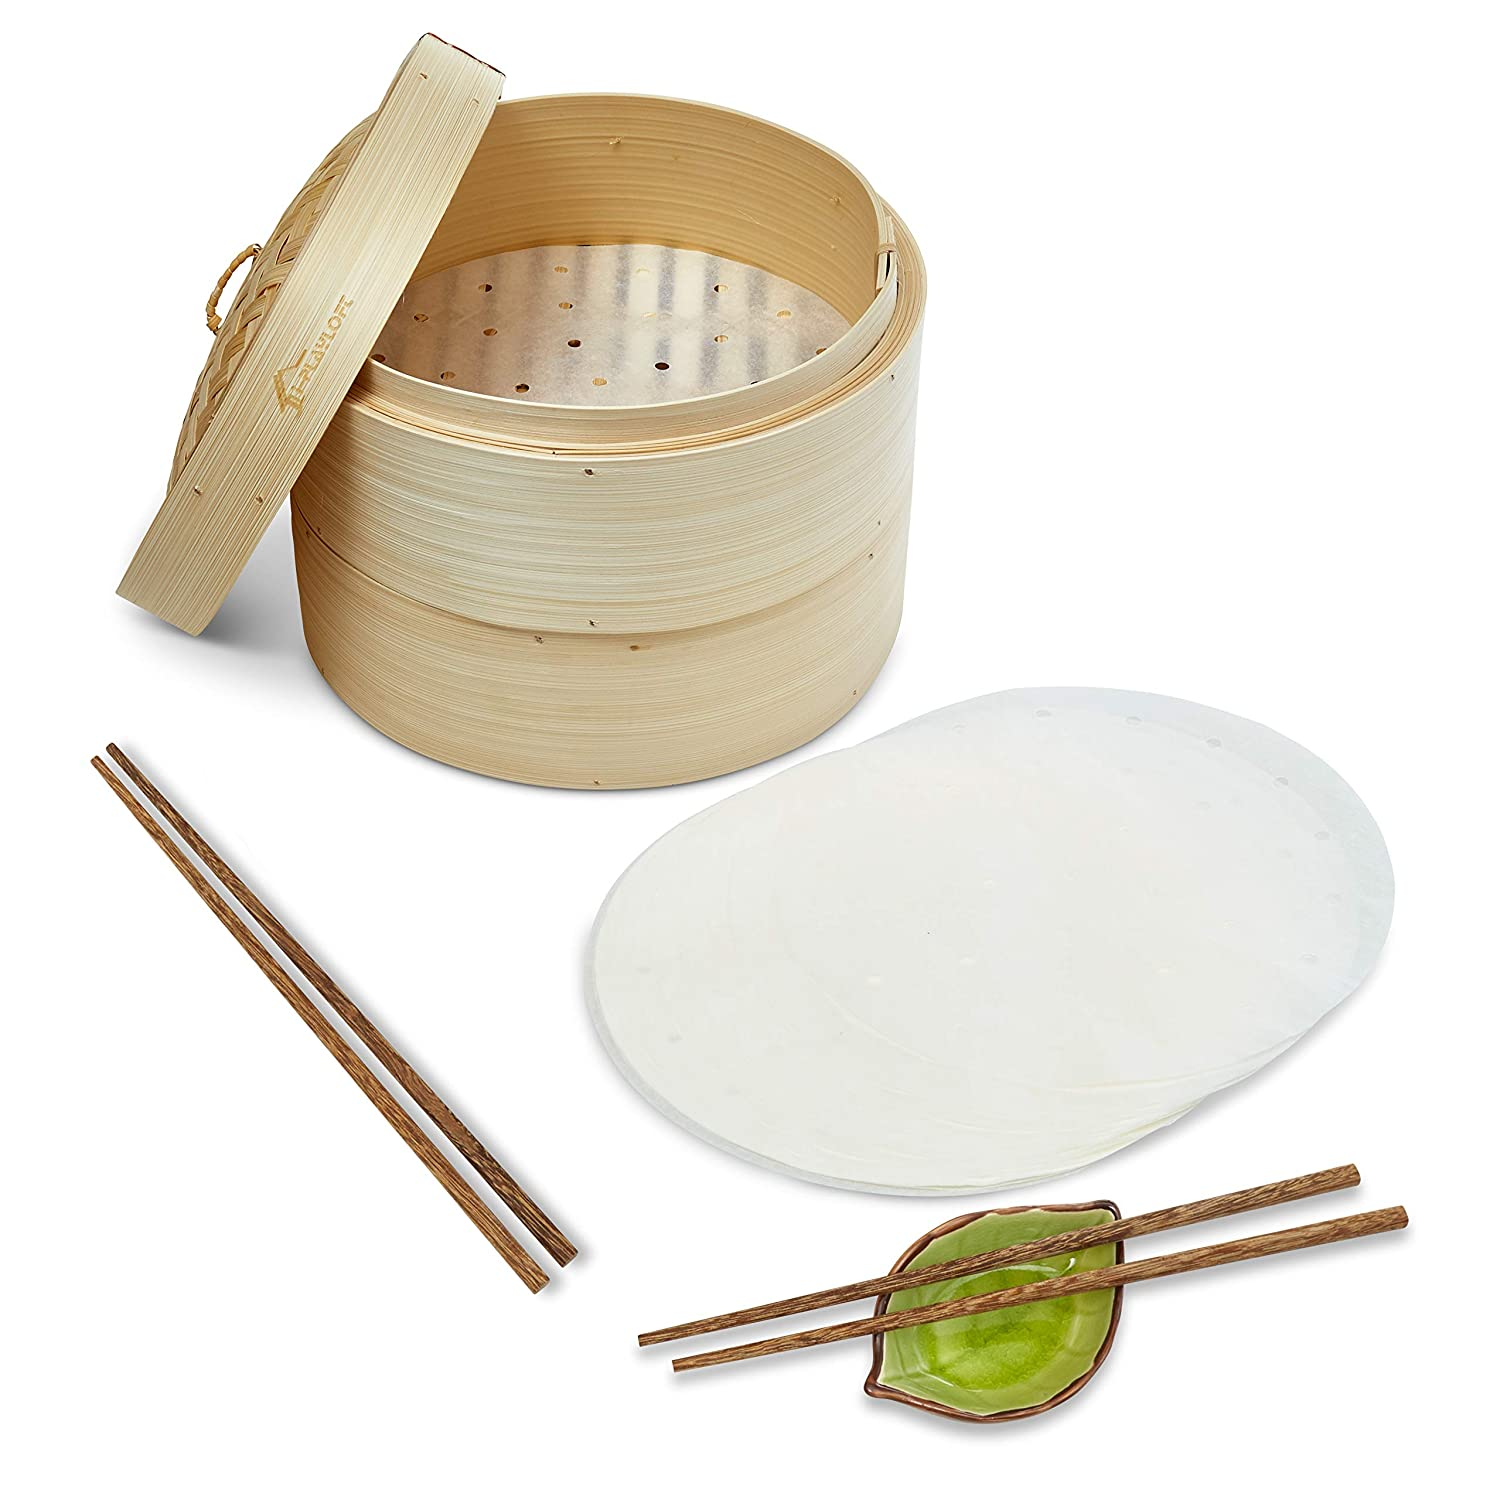 Premium 10 Inch Handmade Bamboo Steamer – Two Tier EXTRA DEPTH Baskets – Dim Sum Dumpling Bao Bun Chinese Food Steamers – Steam Baskets For Rice, Vegetables, Meat Fish Included 2 Sets Chopsticks, 20 Liners Sauce Dish